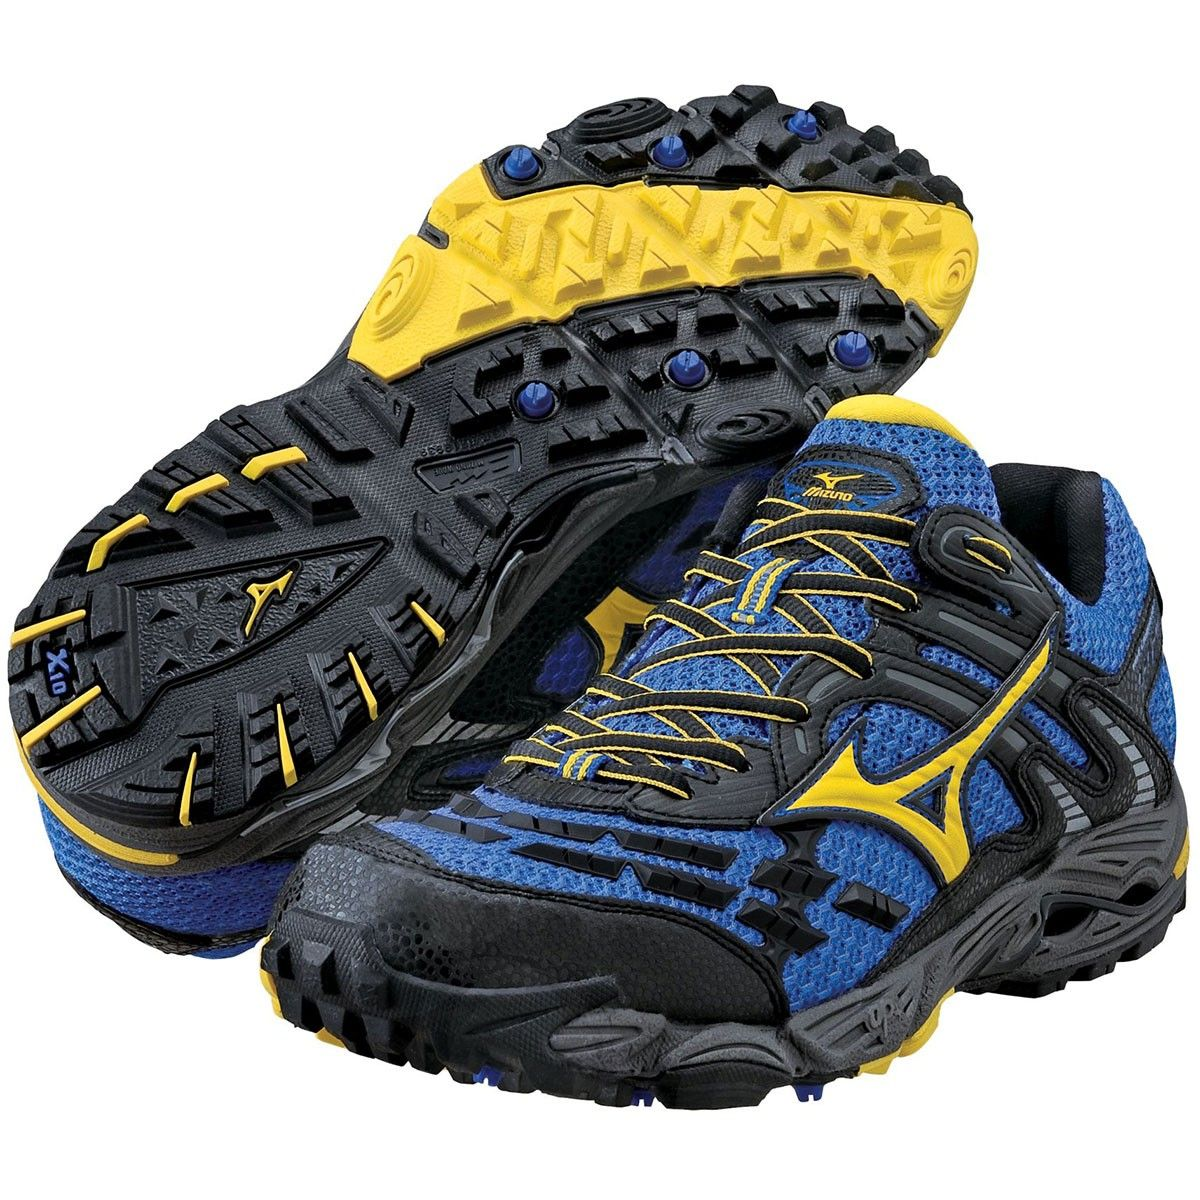 Hiking Shoes Or Running Shoes